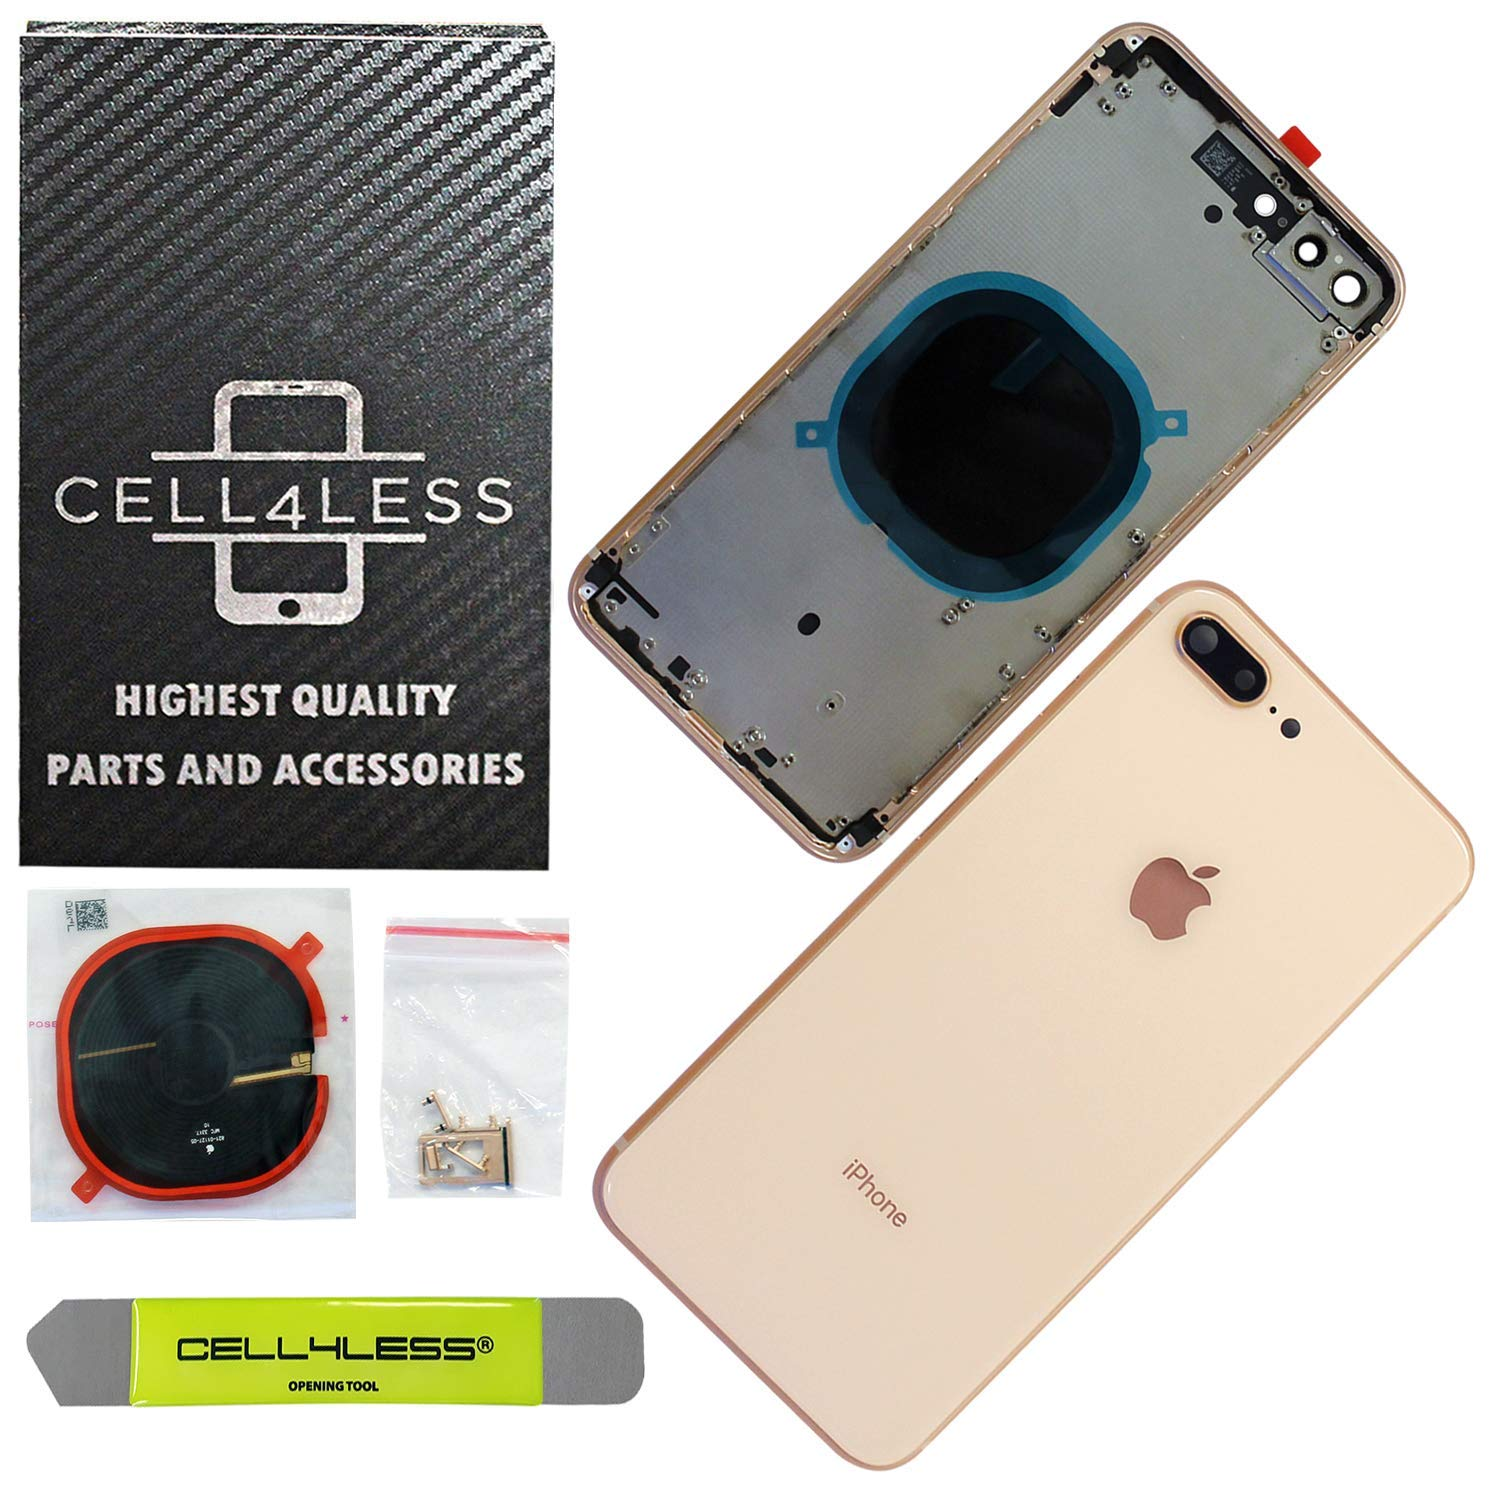 CELL4LESS Back Housing Assembly Metal Frame w/Back Glass - Wireless Charging pad - Sim Card Tray and Camera Frame w/Lens Compatible Only with iPhone 8 Plus (Gold) by Cell4Less